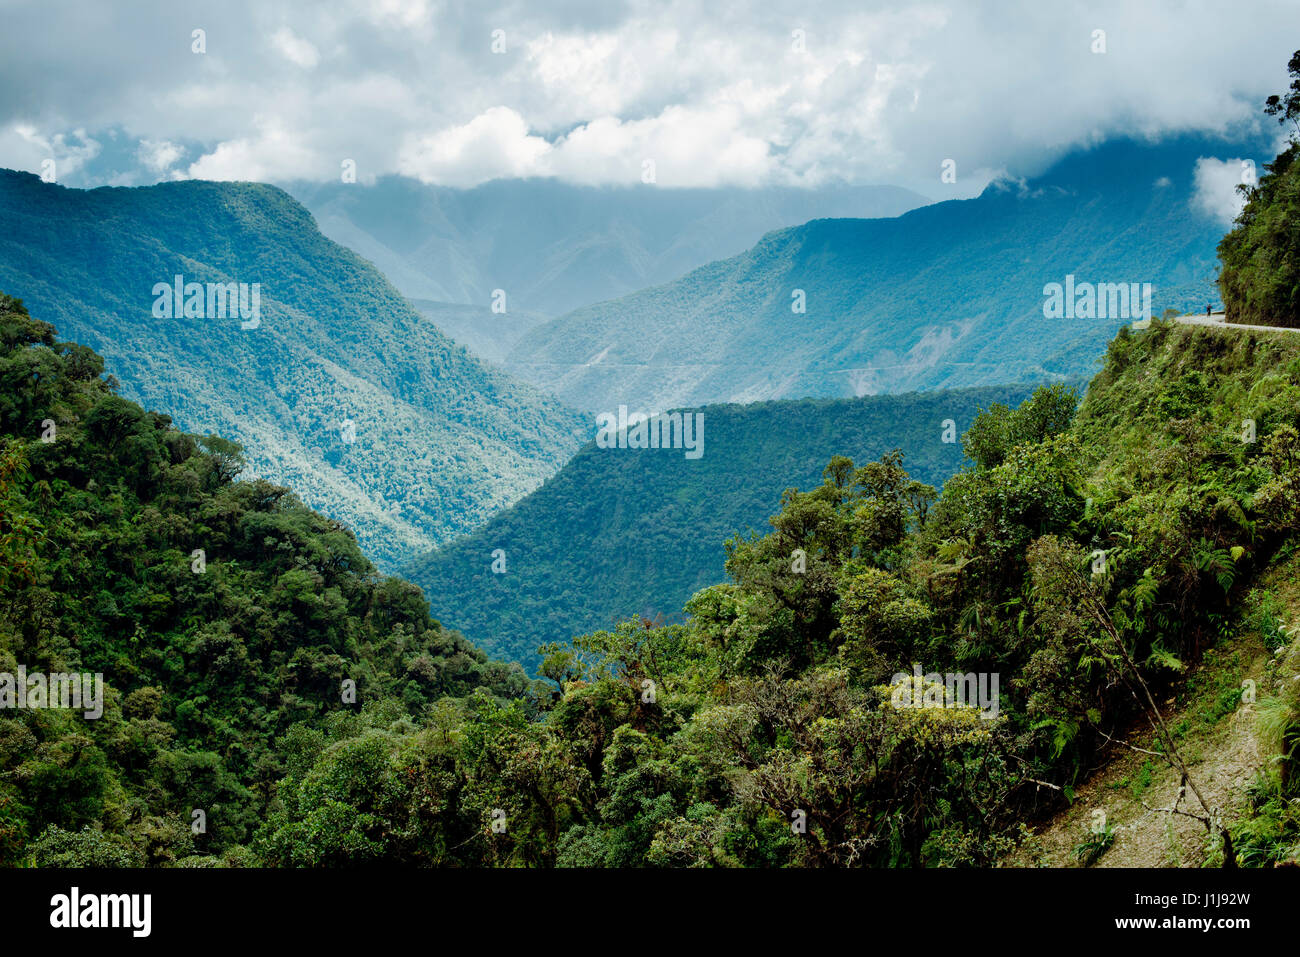 Panoramic view of the mountainous landscape of North Yongas and a cyclist on the Death Road on the far right, Bolivia - Stock Image